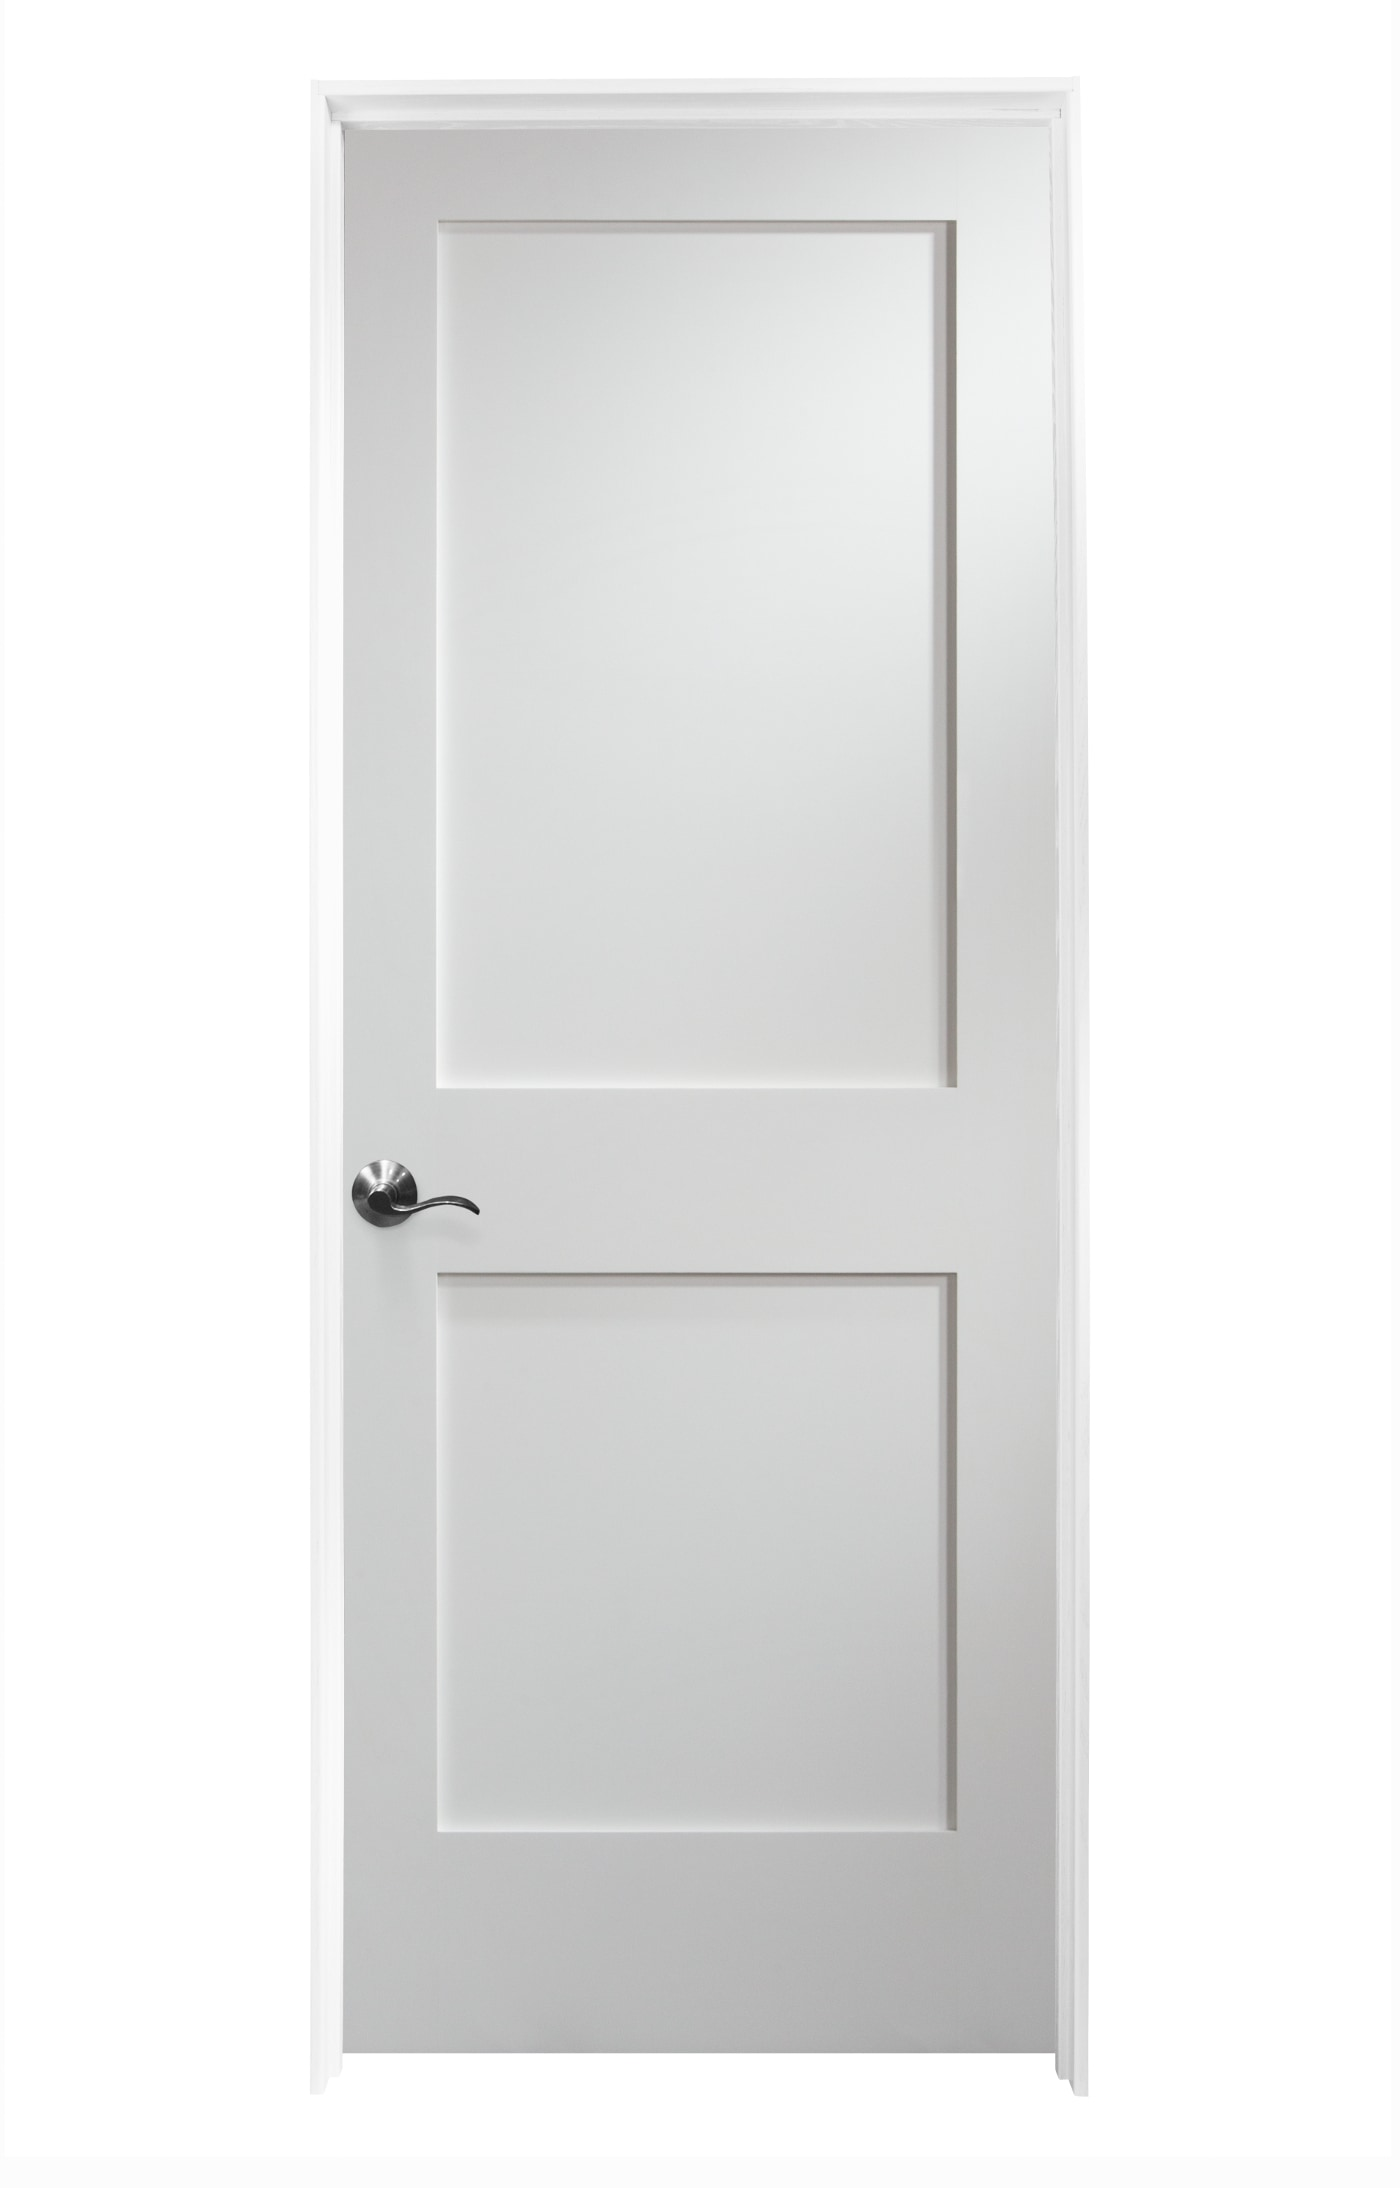 doors panel update an way moulding interior how easy flush to flat inexpensive with